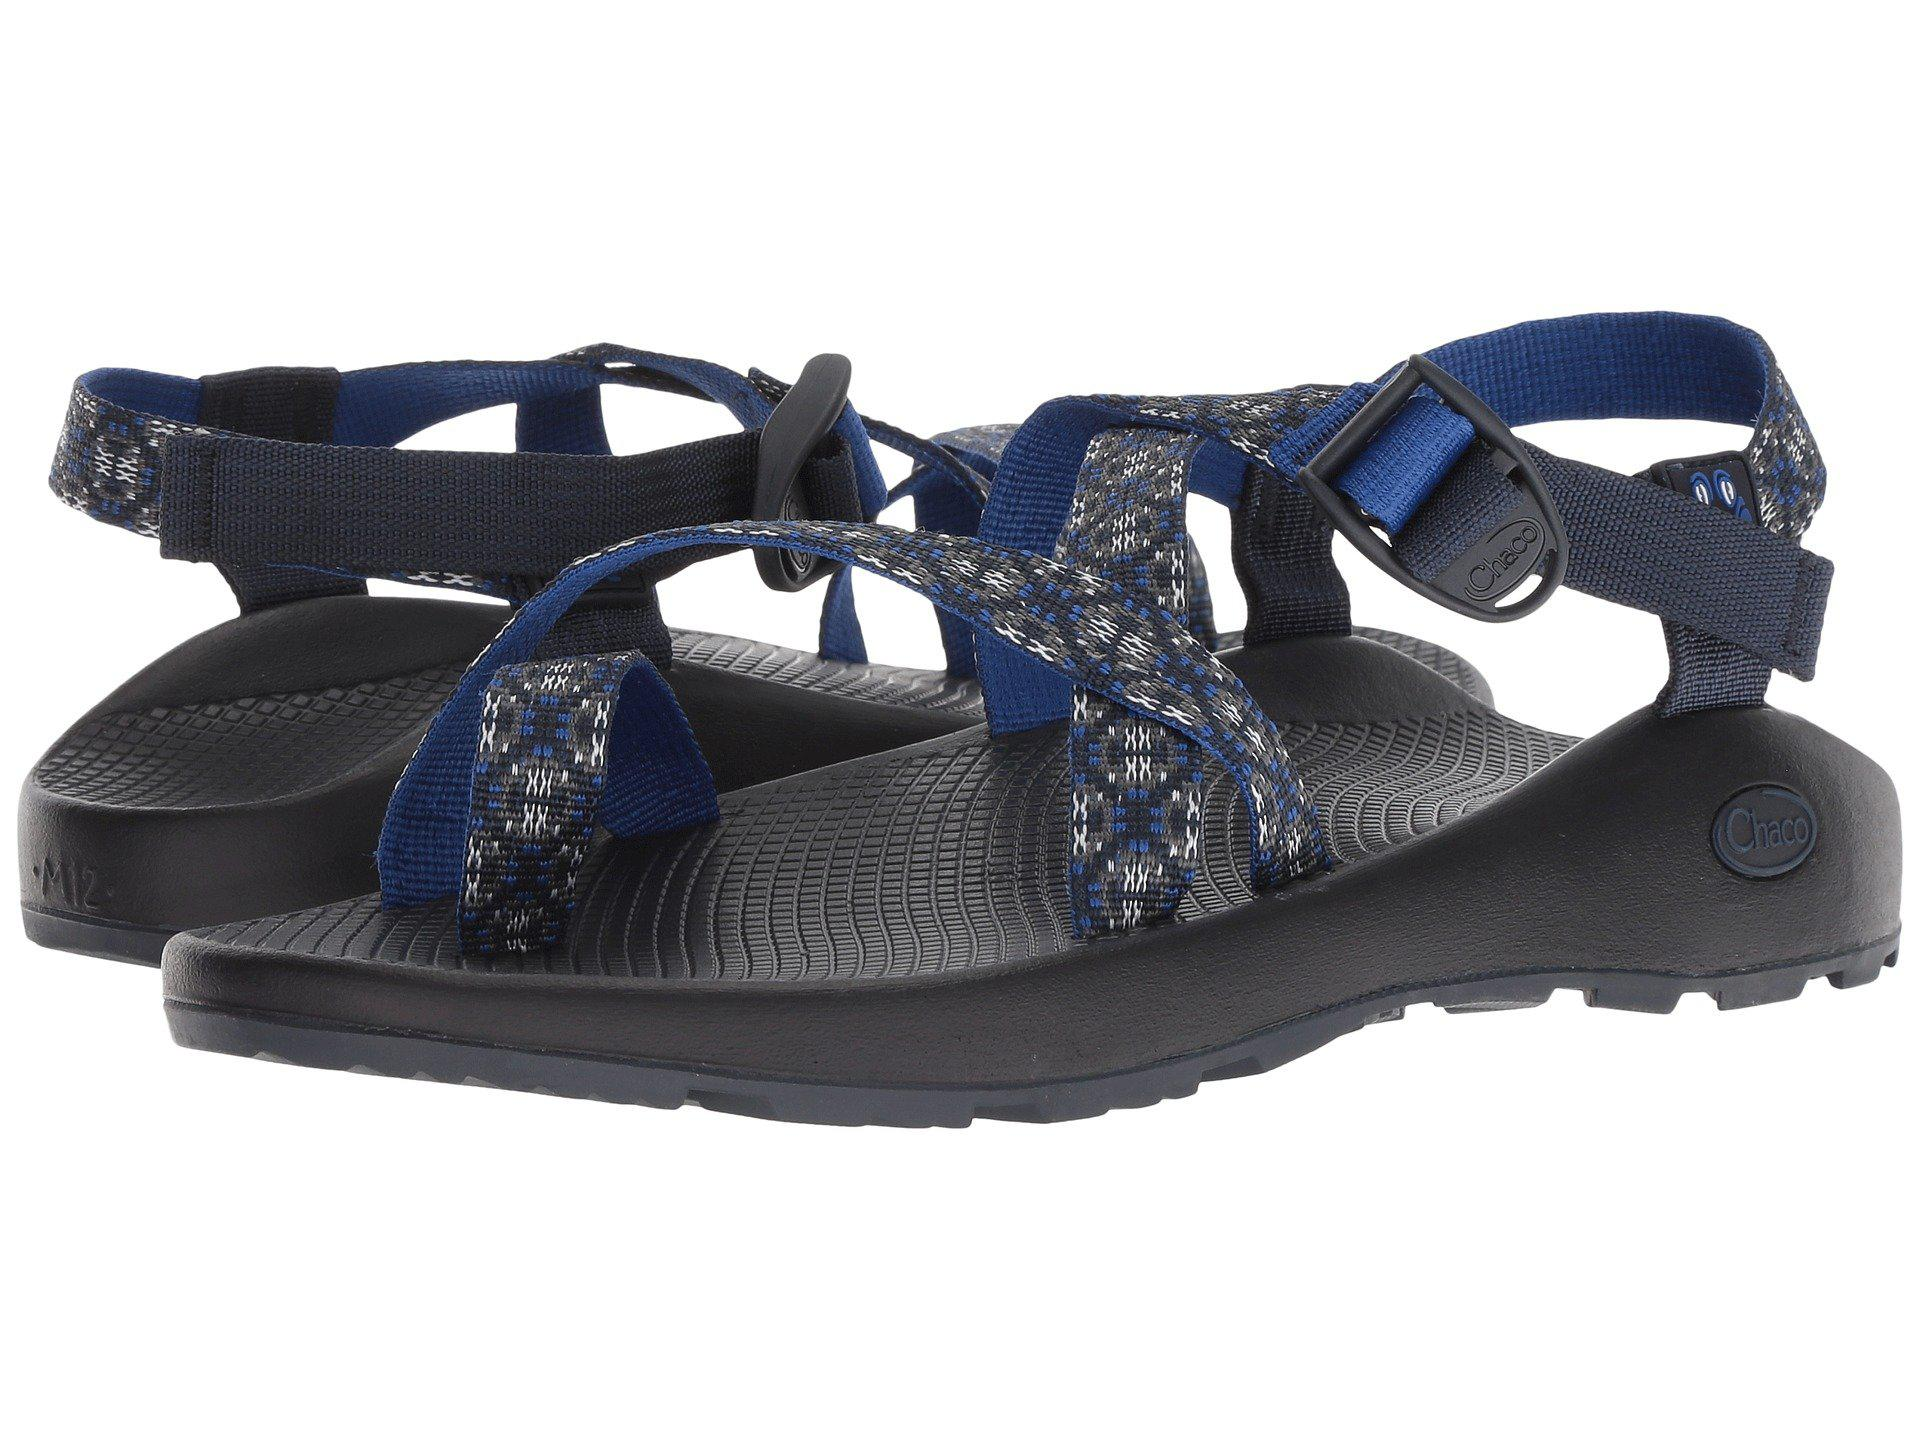 a9adbbcbf0e3 Lyst - Chaco Z 2(r) Classic (stepped Navy) Men s Sandals in Blue